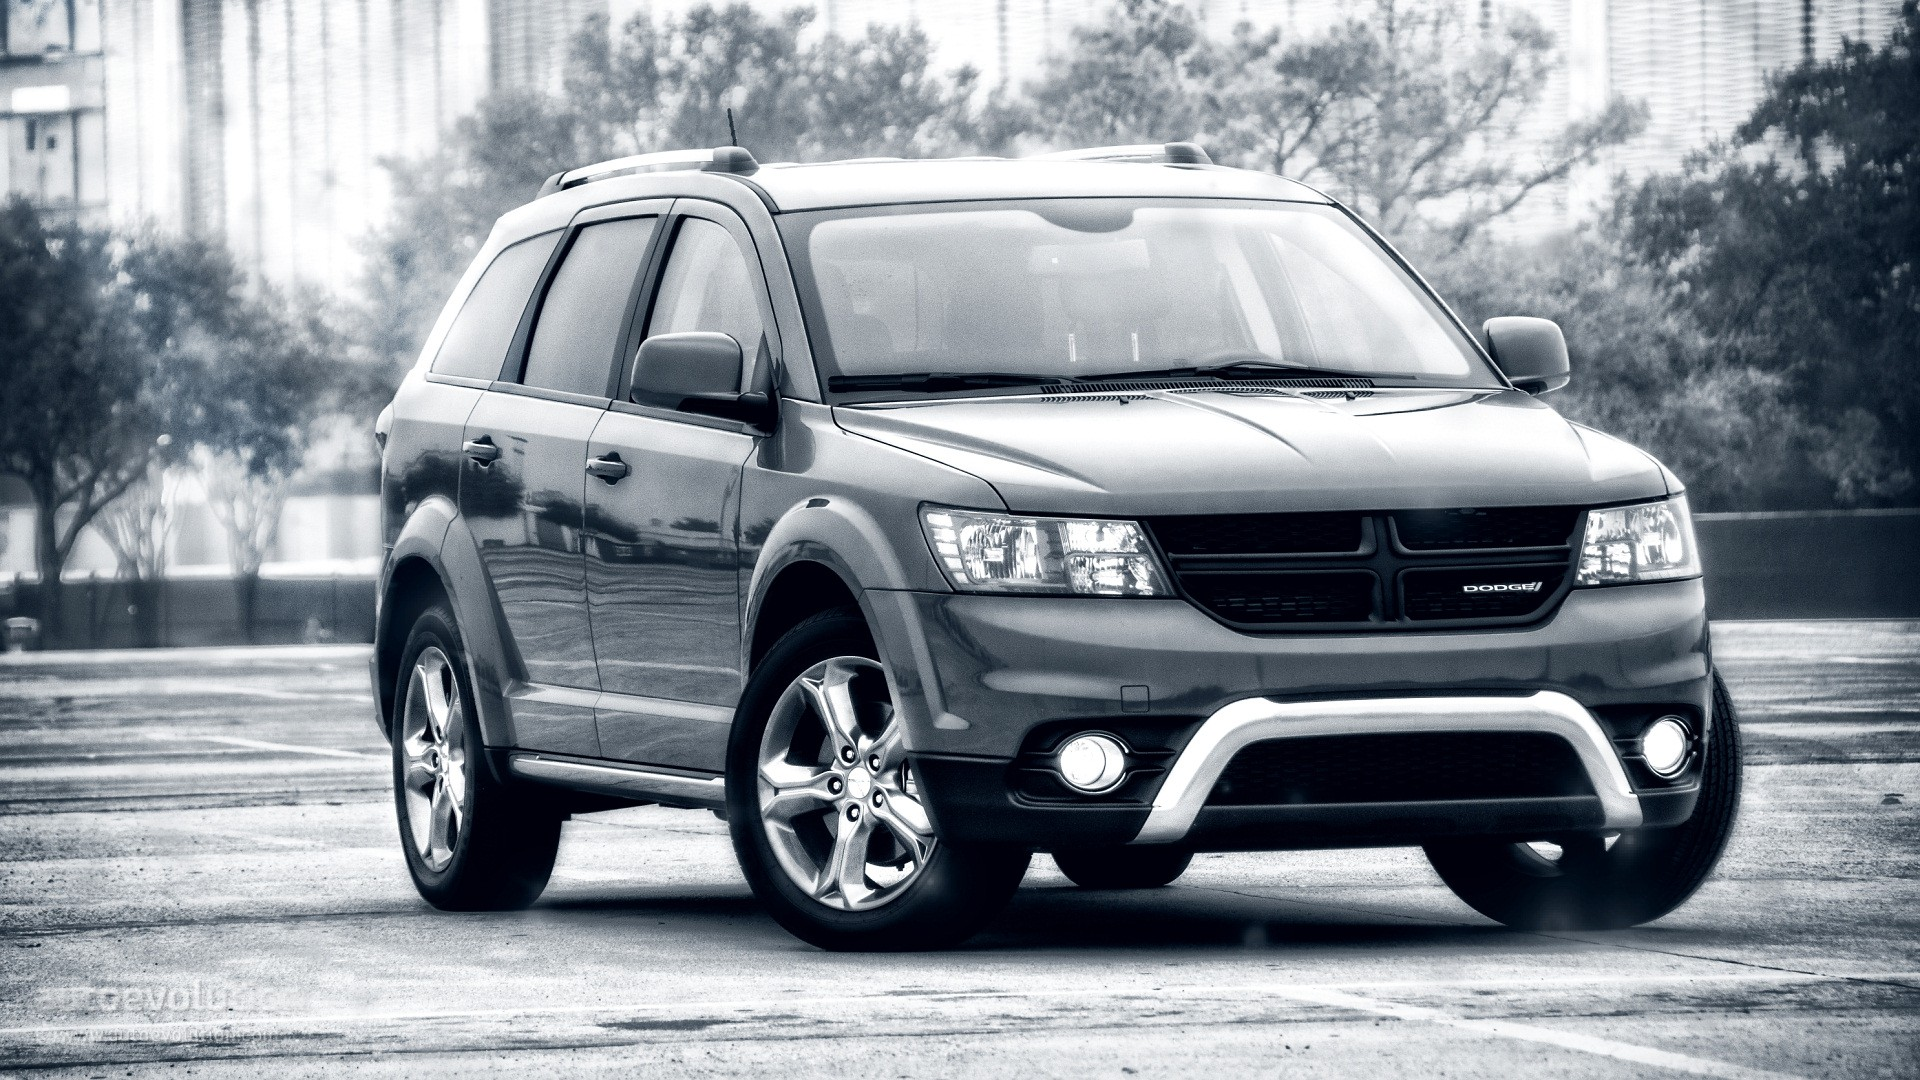 2015 Dodge Journey Review - autoevolution